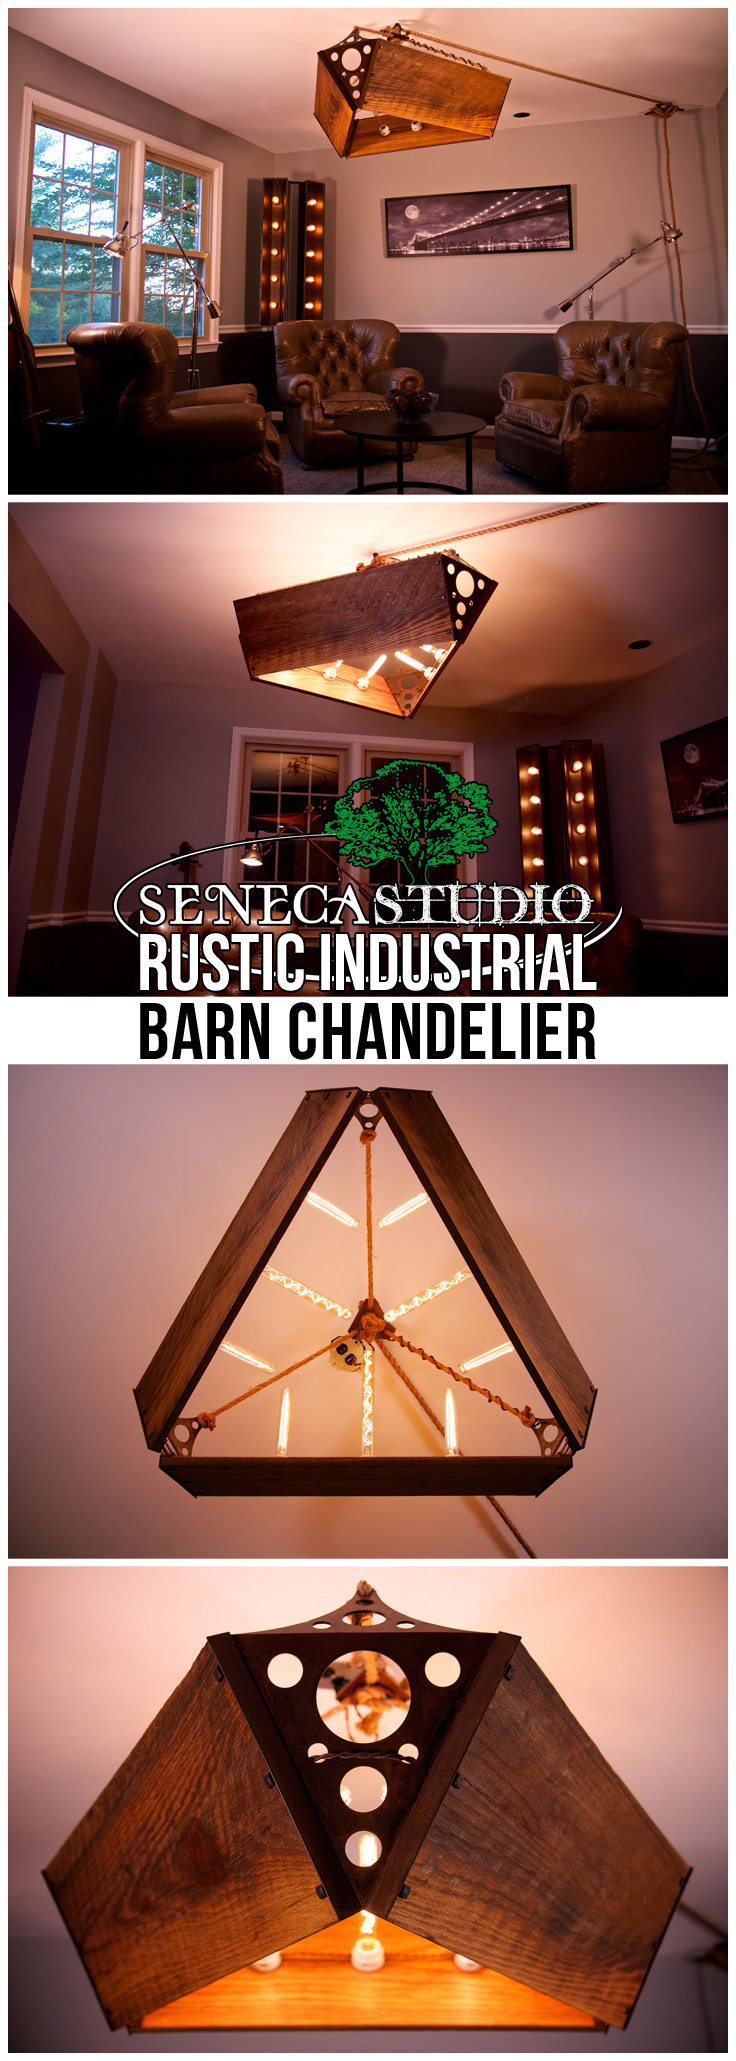 Rustic Industrial Barn Chandelier